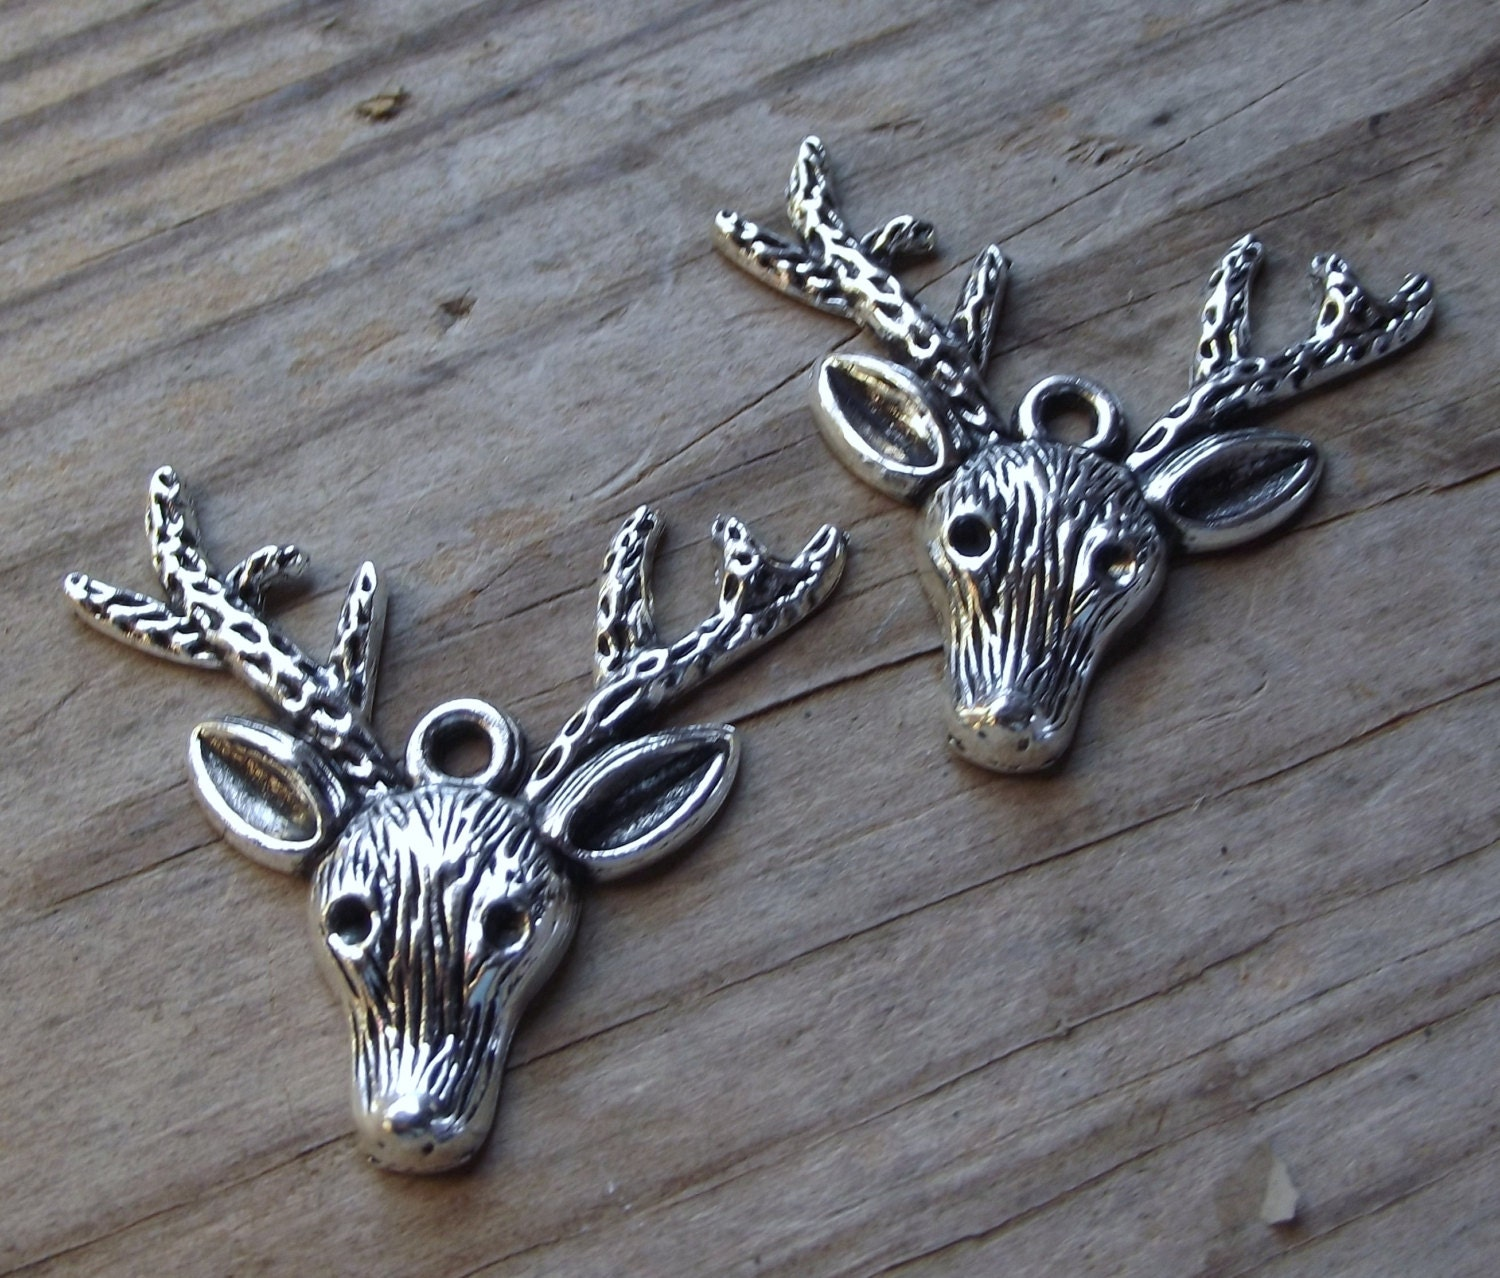 2 silver tone deer charms jewelry supply findings